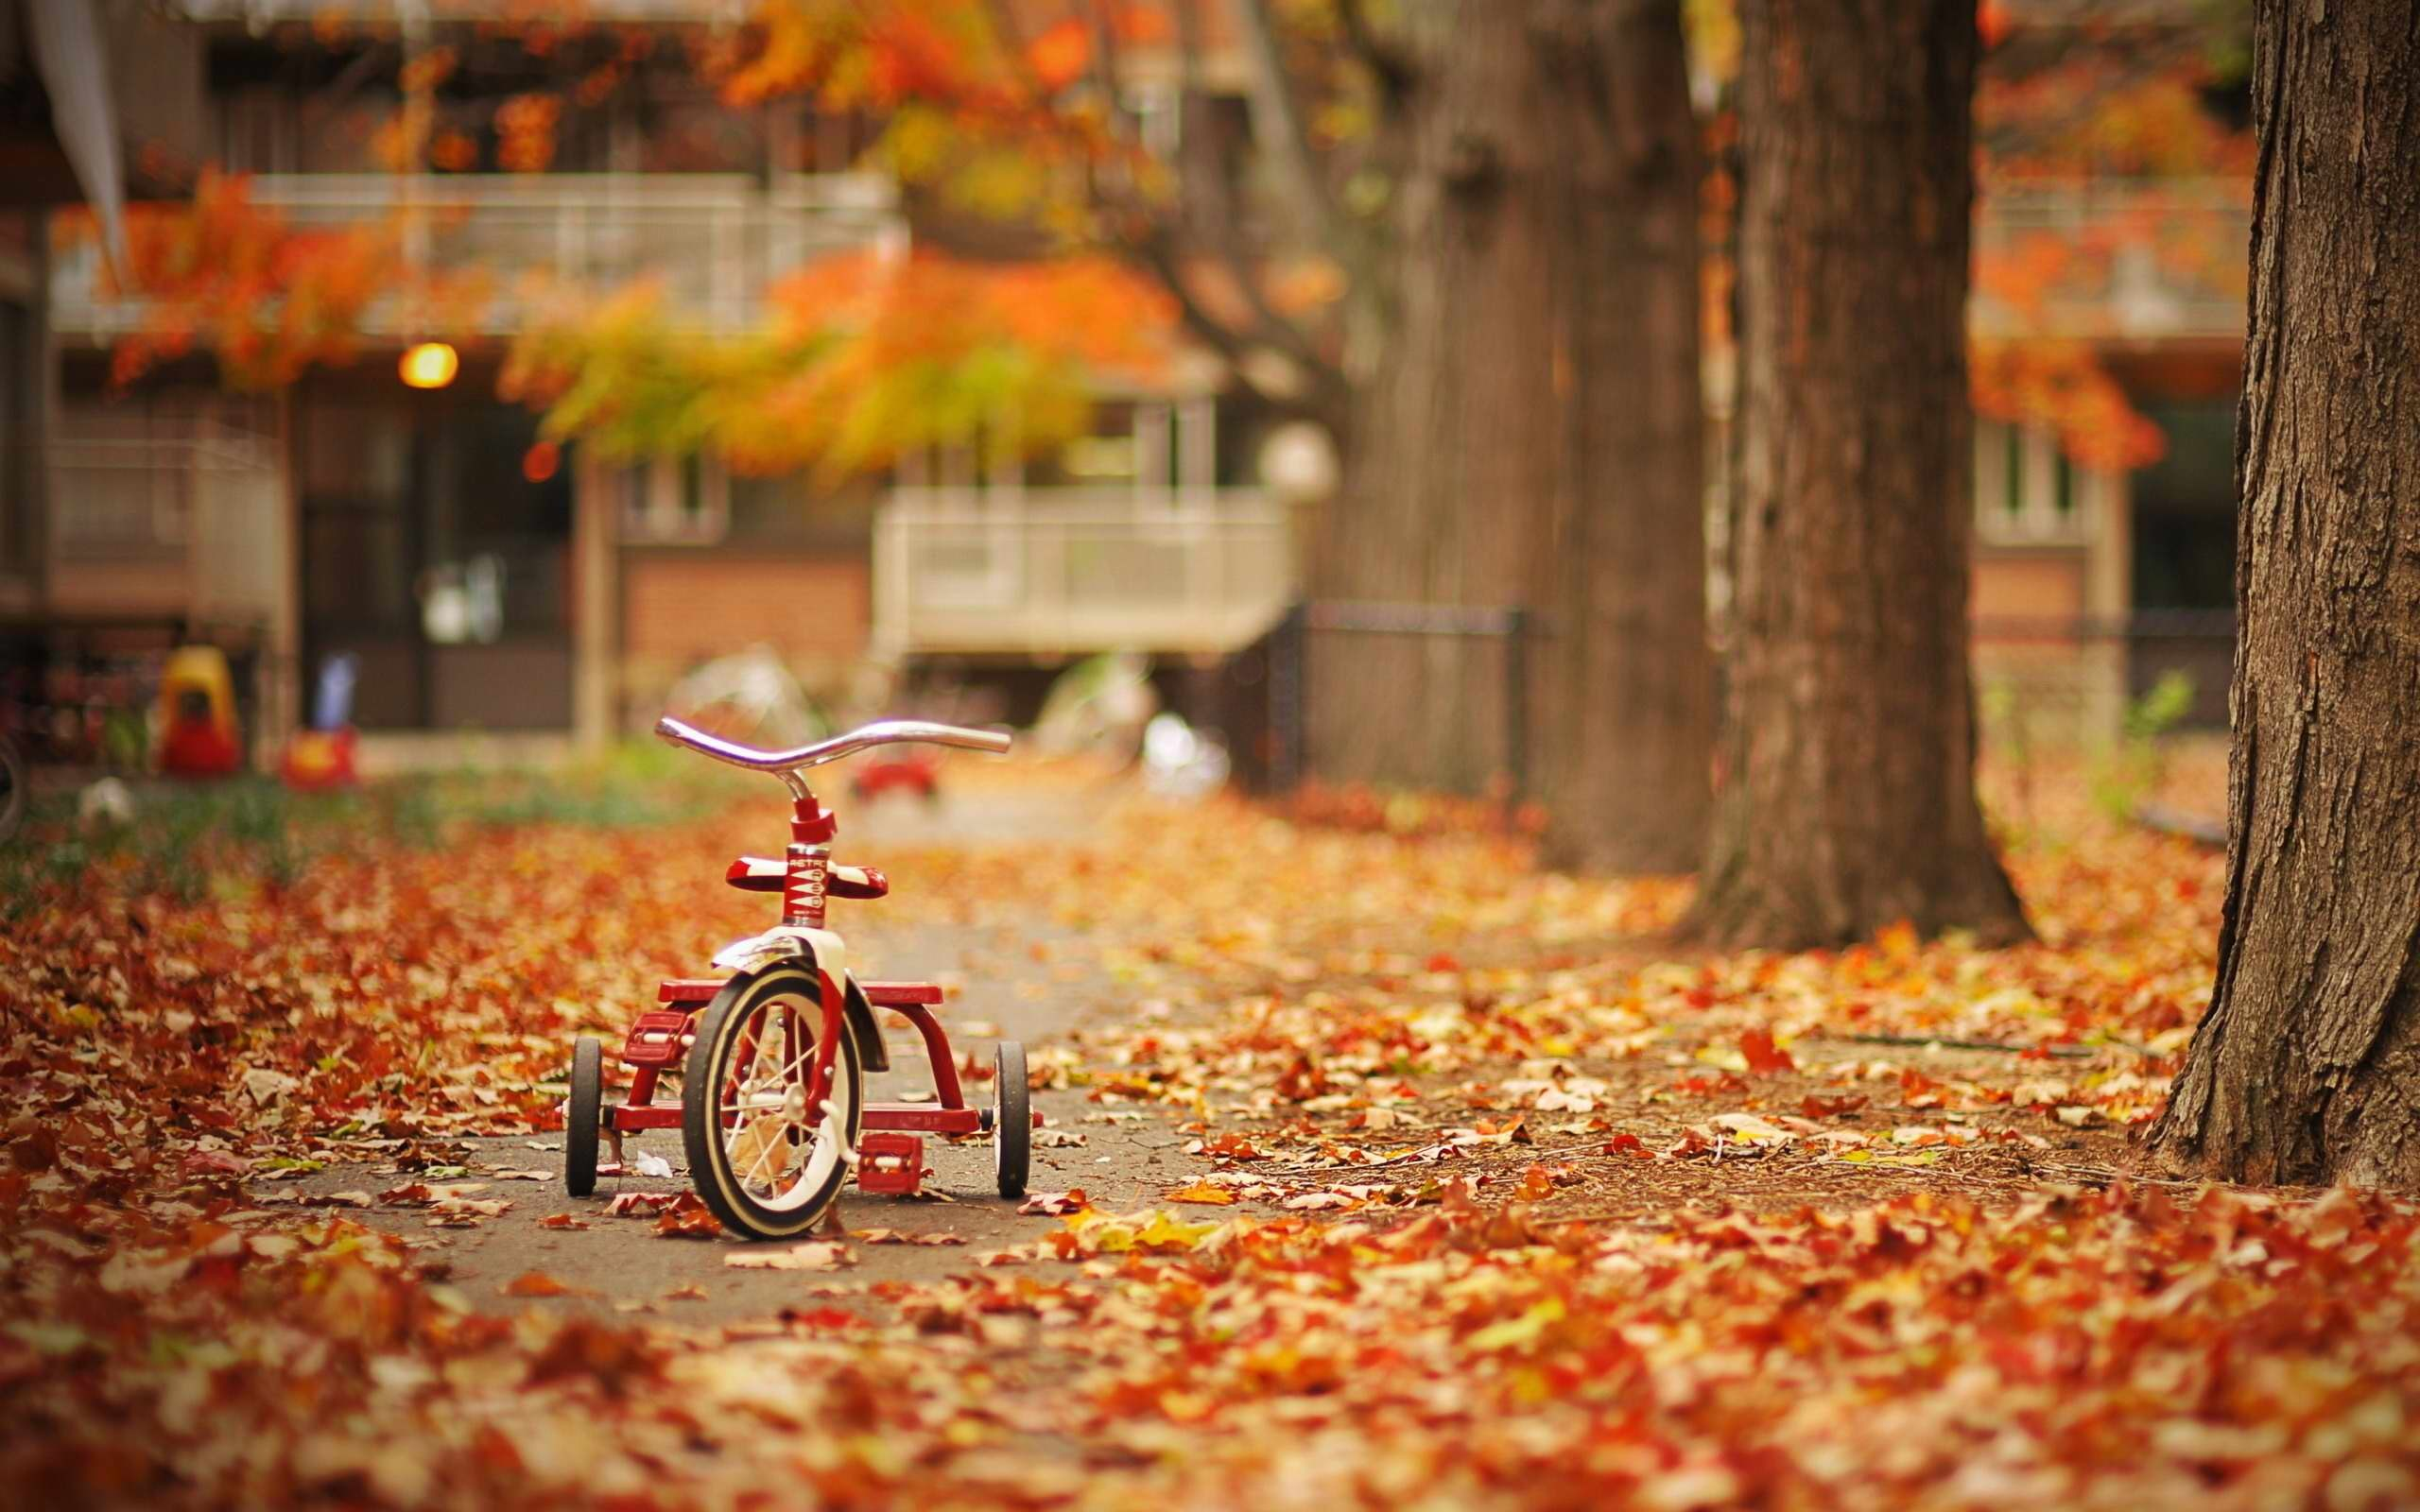 2560x1600 Fall Season, wallpaper, Fall Season hd wallpaper, background desktop